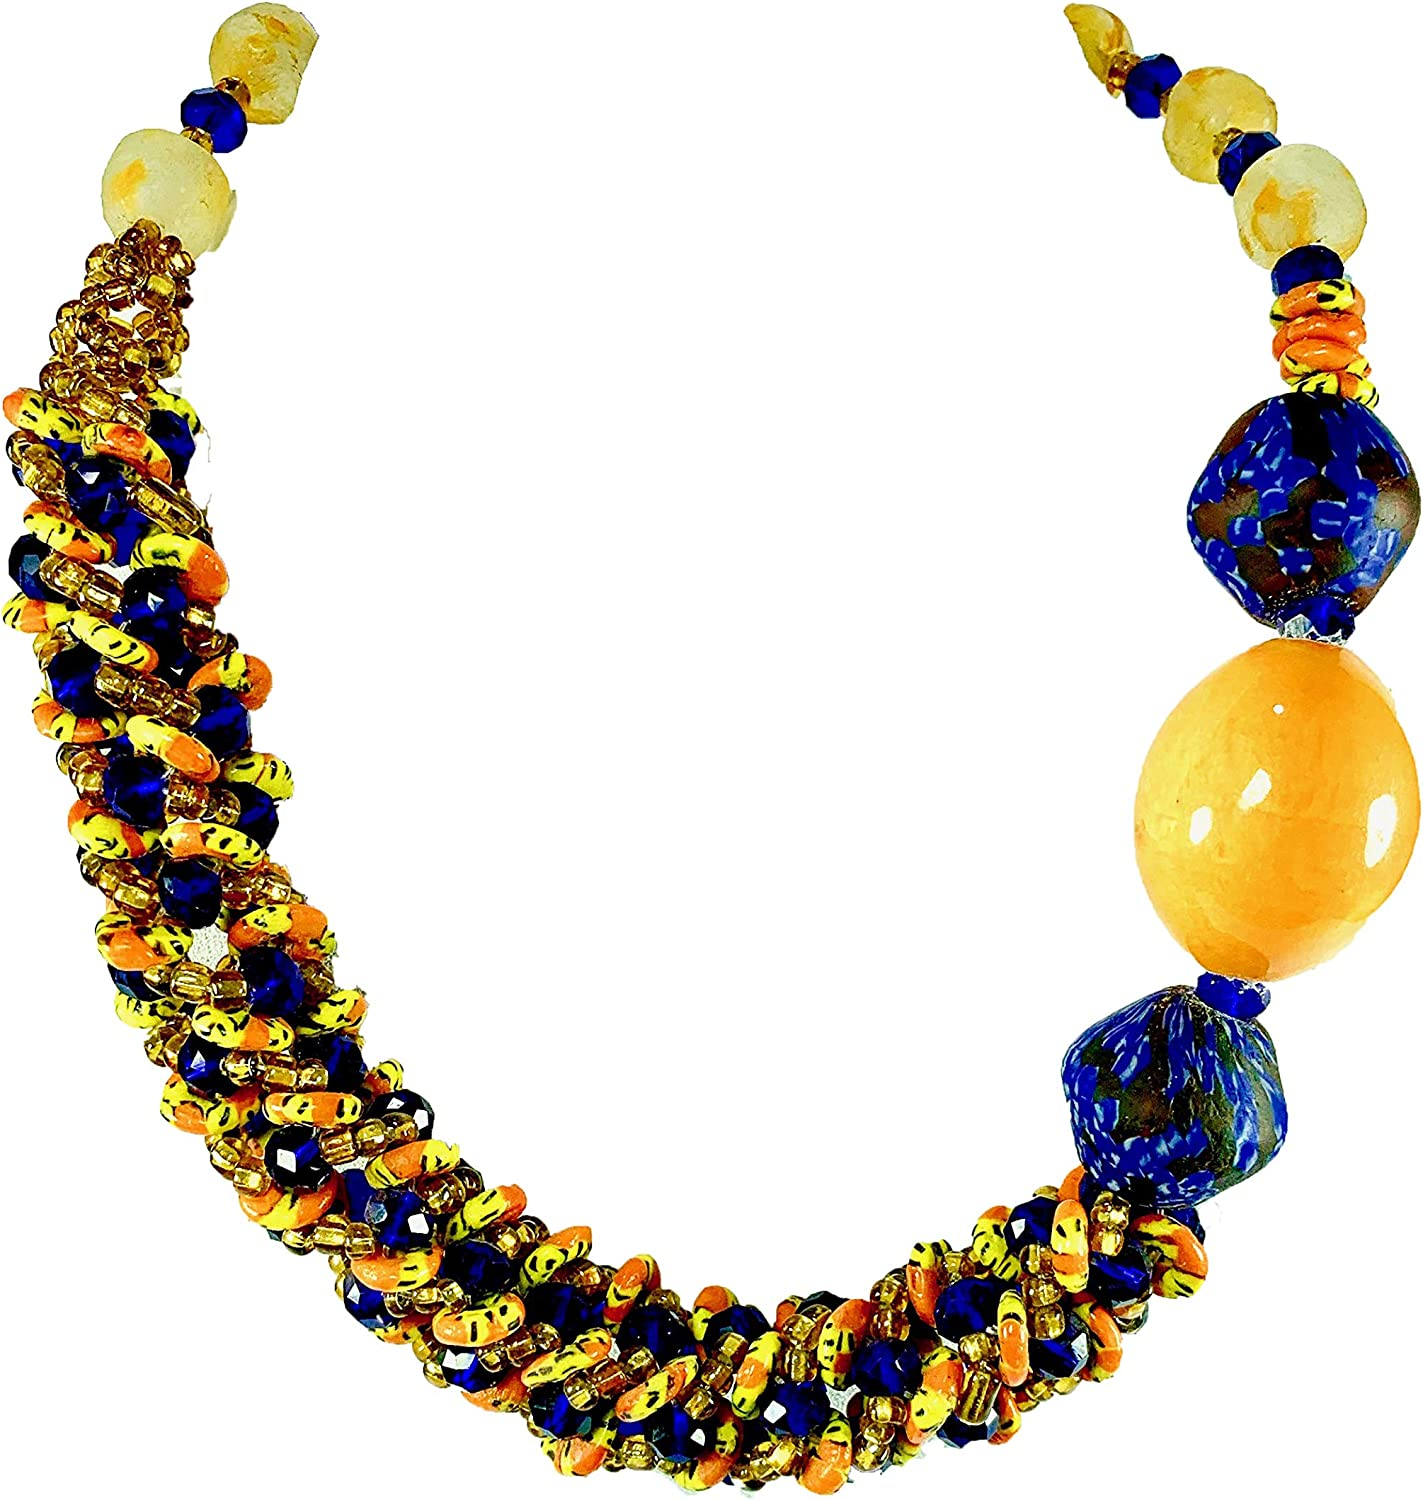 Sophia Dor Wisdom Glass Bead Necklace with Bracelet and Earring Set